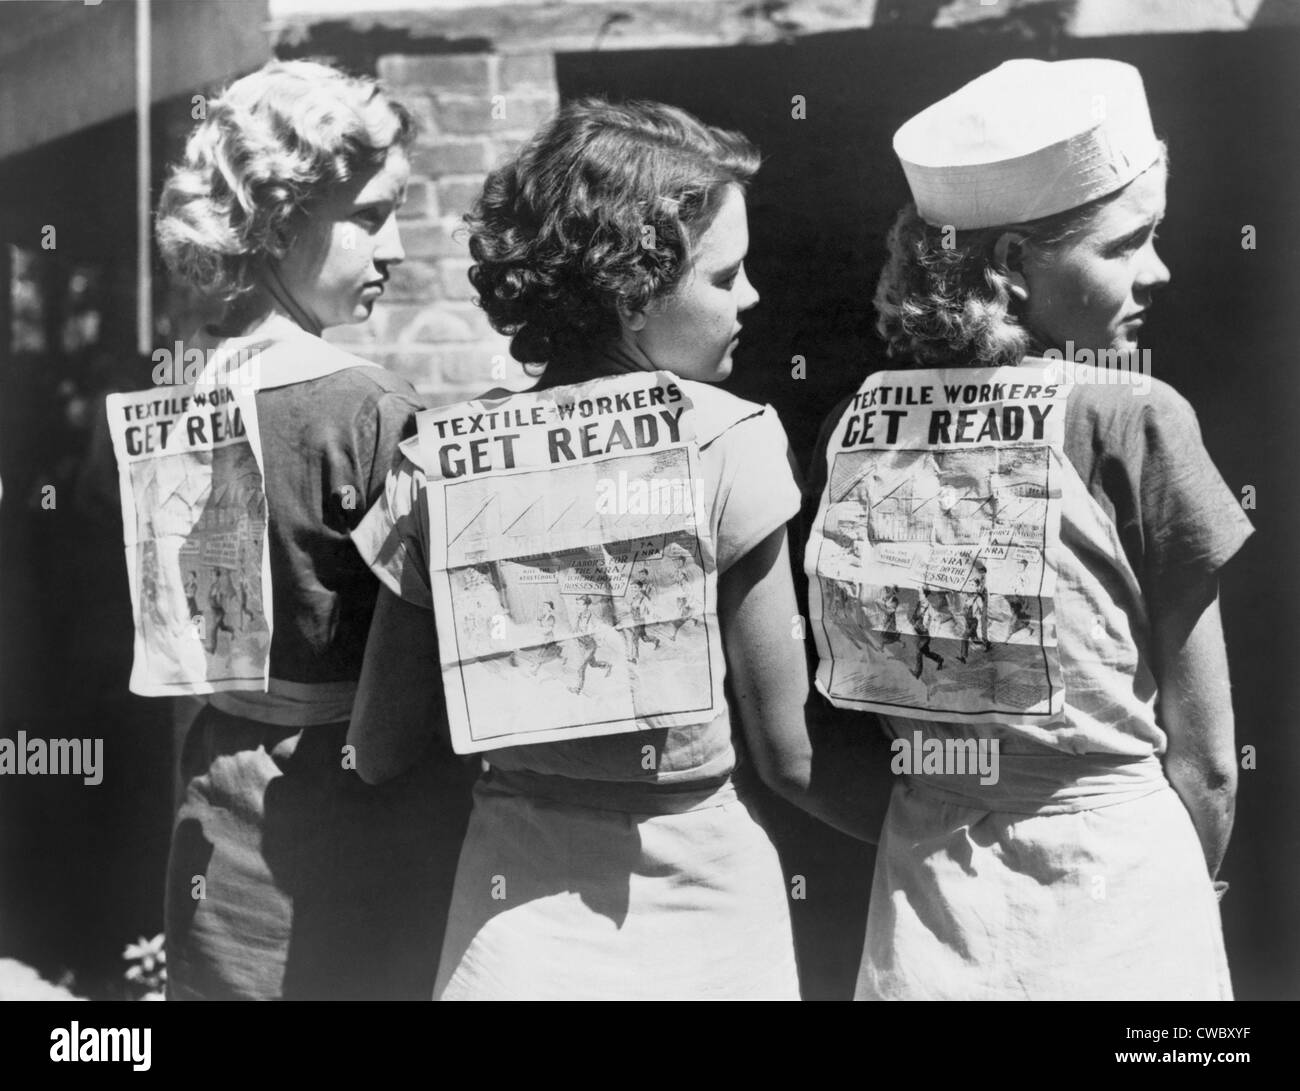 Textile workers displaying picket signs pinned on their backs during Labor Day demonstration in Gastonia, N.C. 1934. - Stock Image